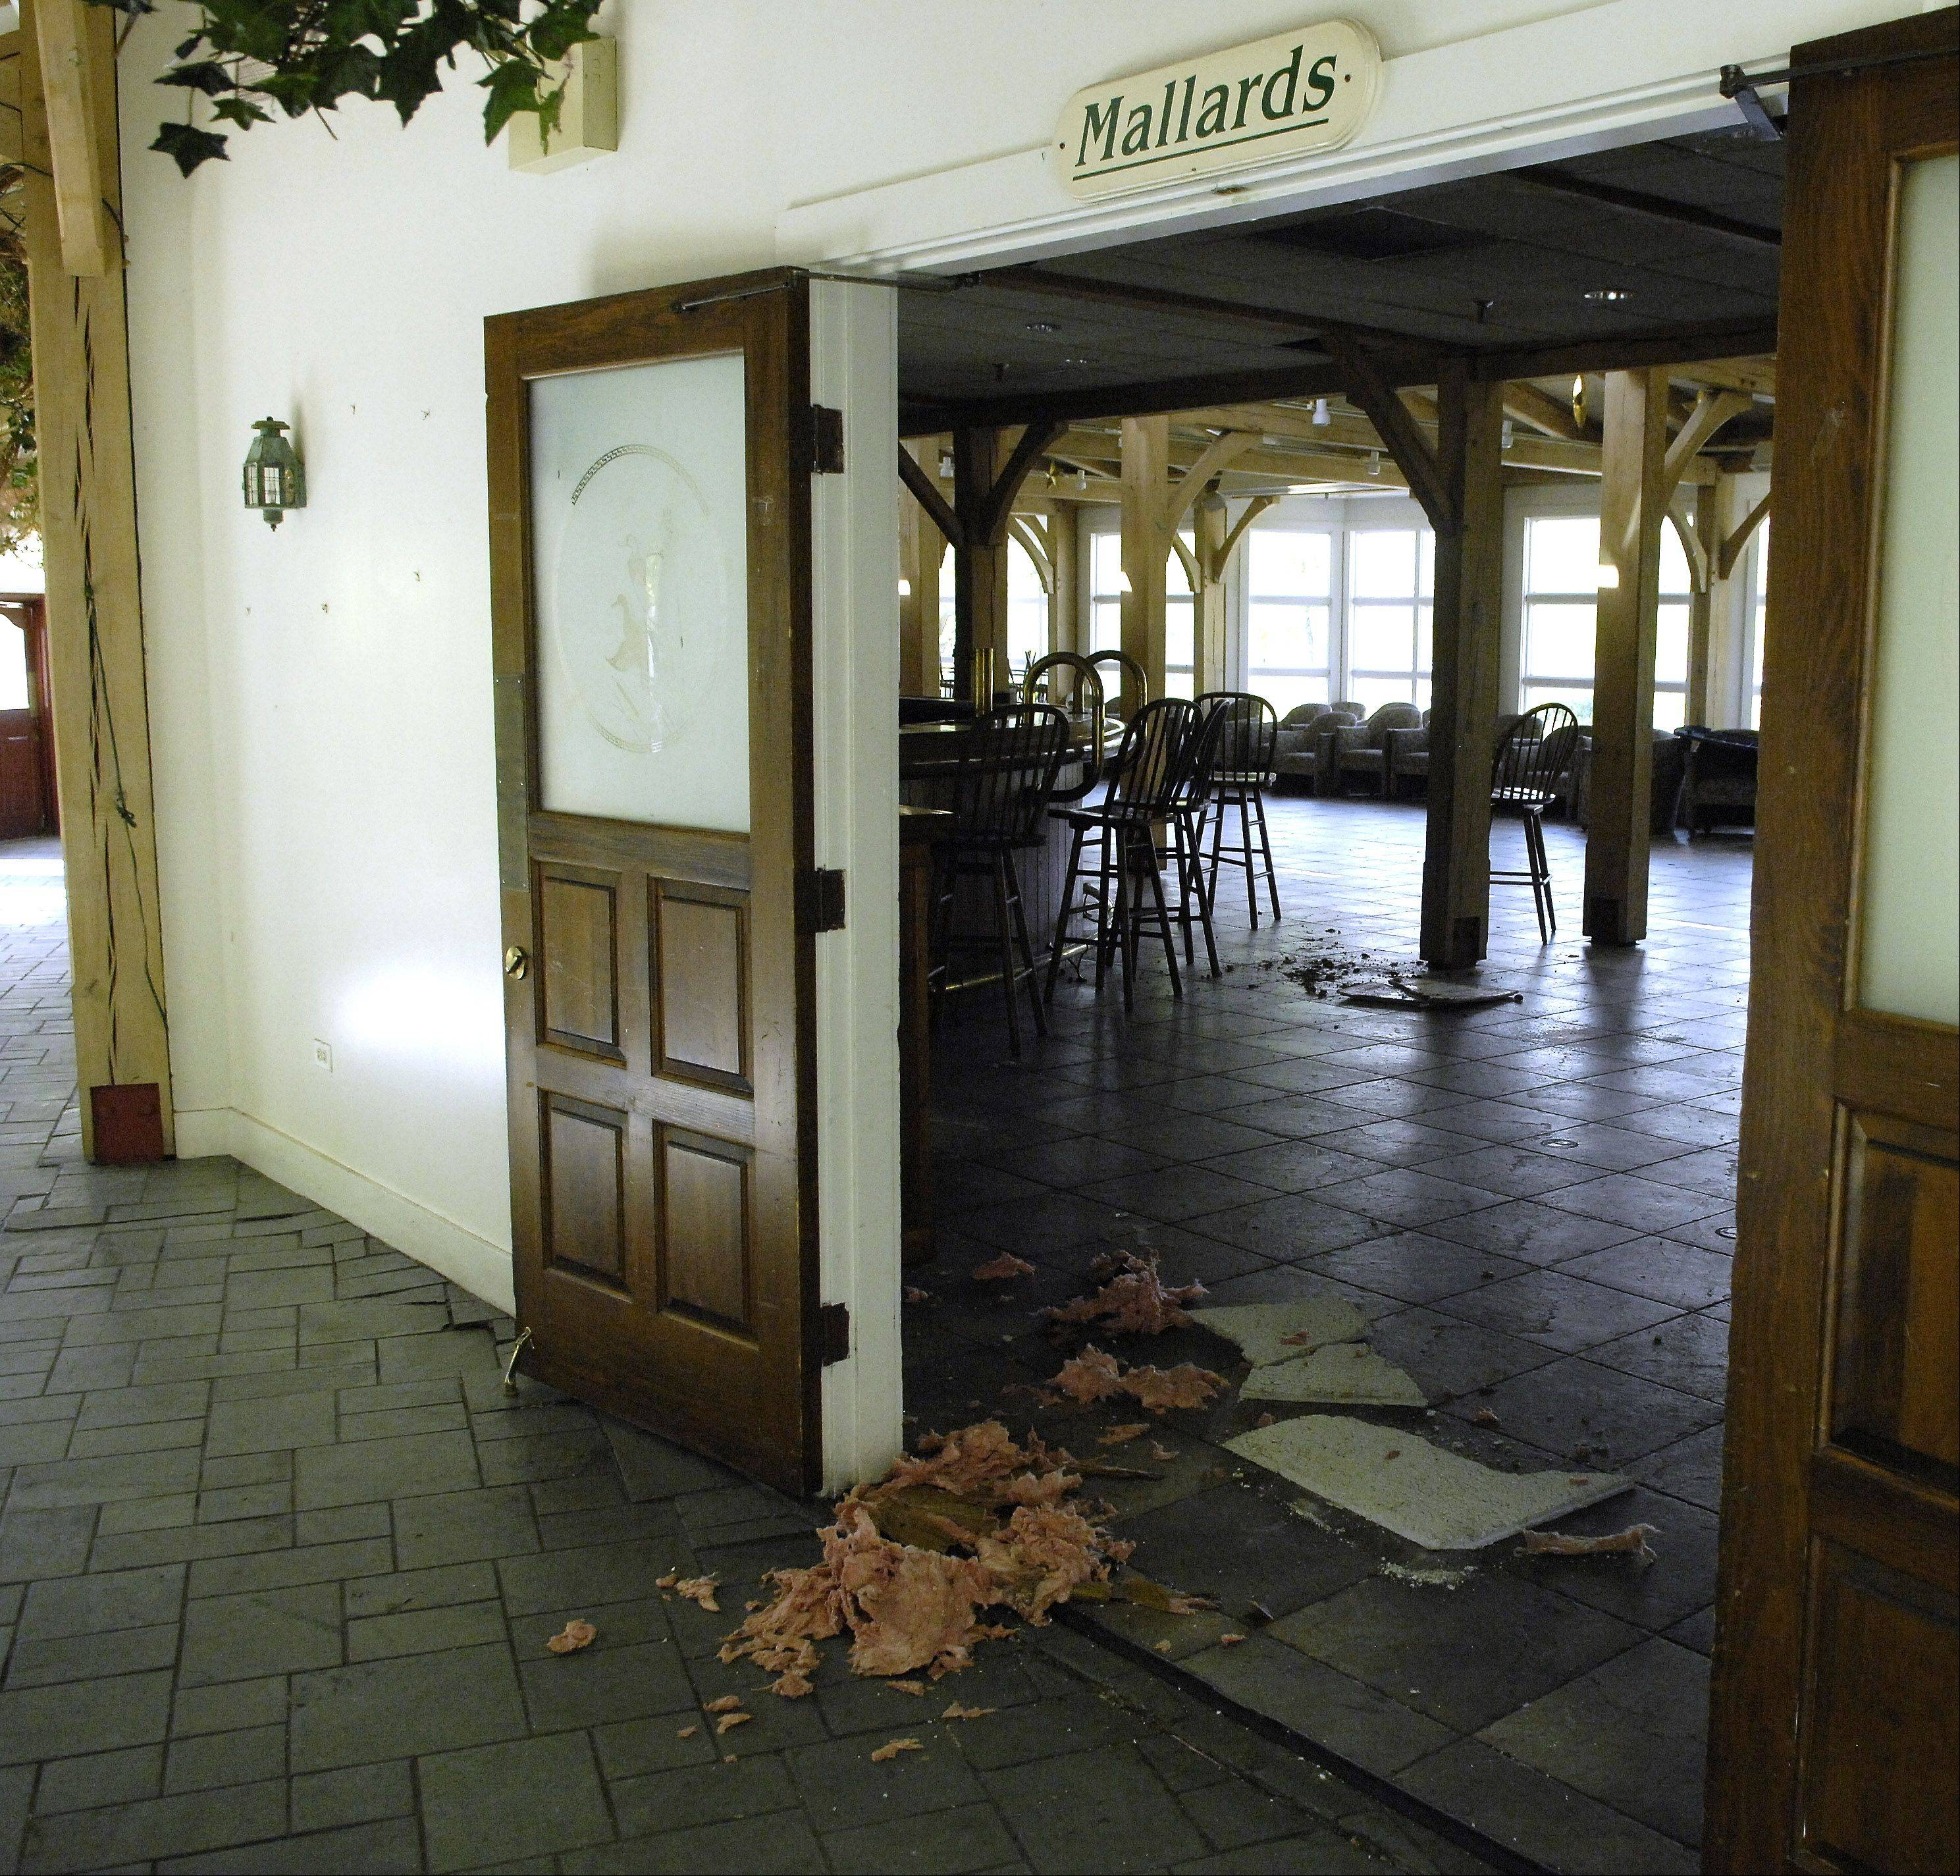 Ceiling tiles at the Mill Race Inn are chewed up and on the floor, possibly as a result of a group of raccoons that city officials believe may be inhabiting the attic of the vacant building.